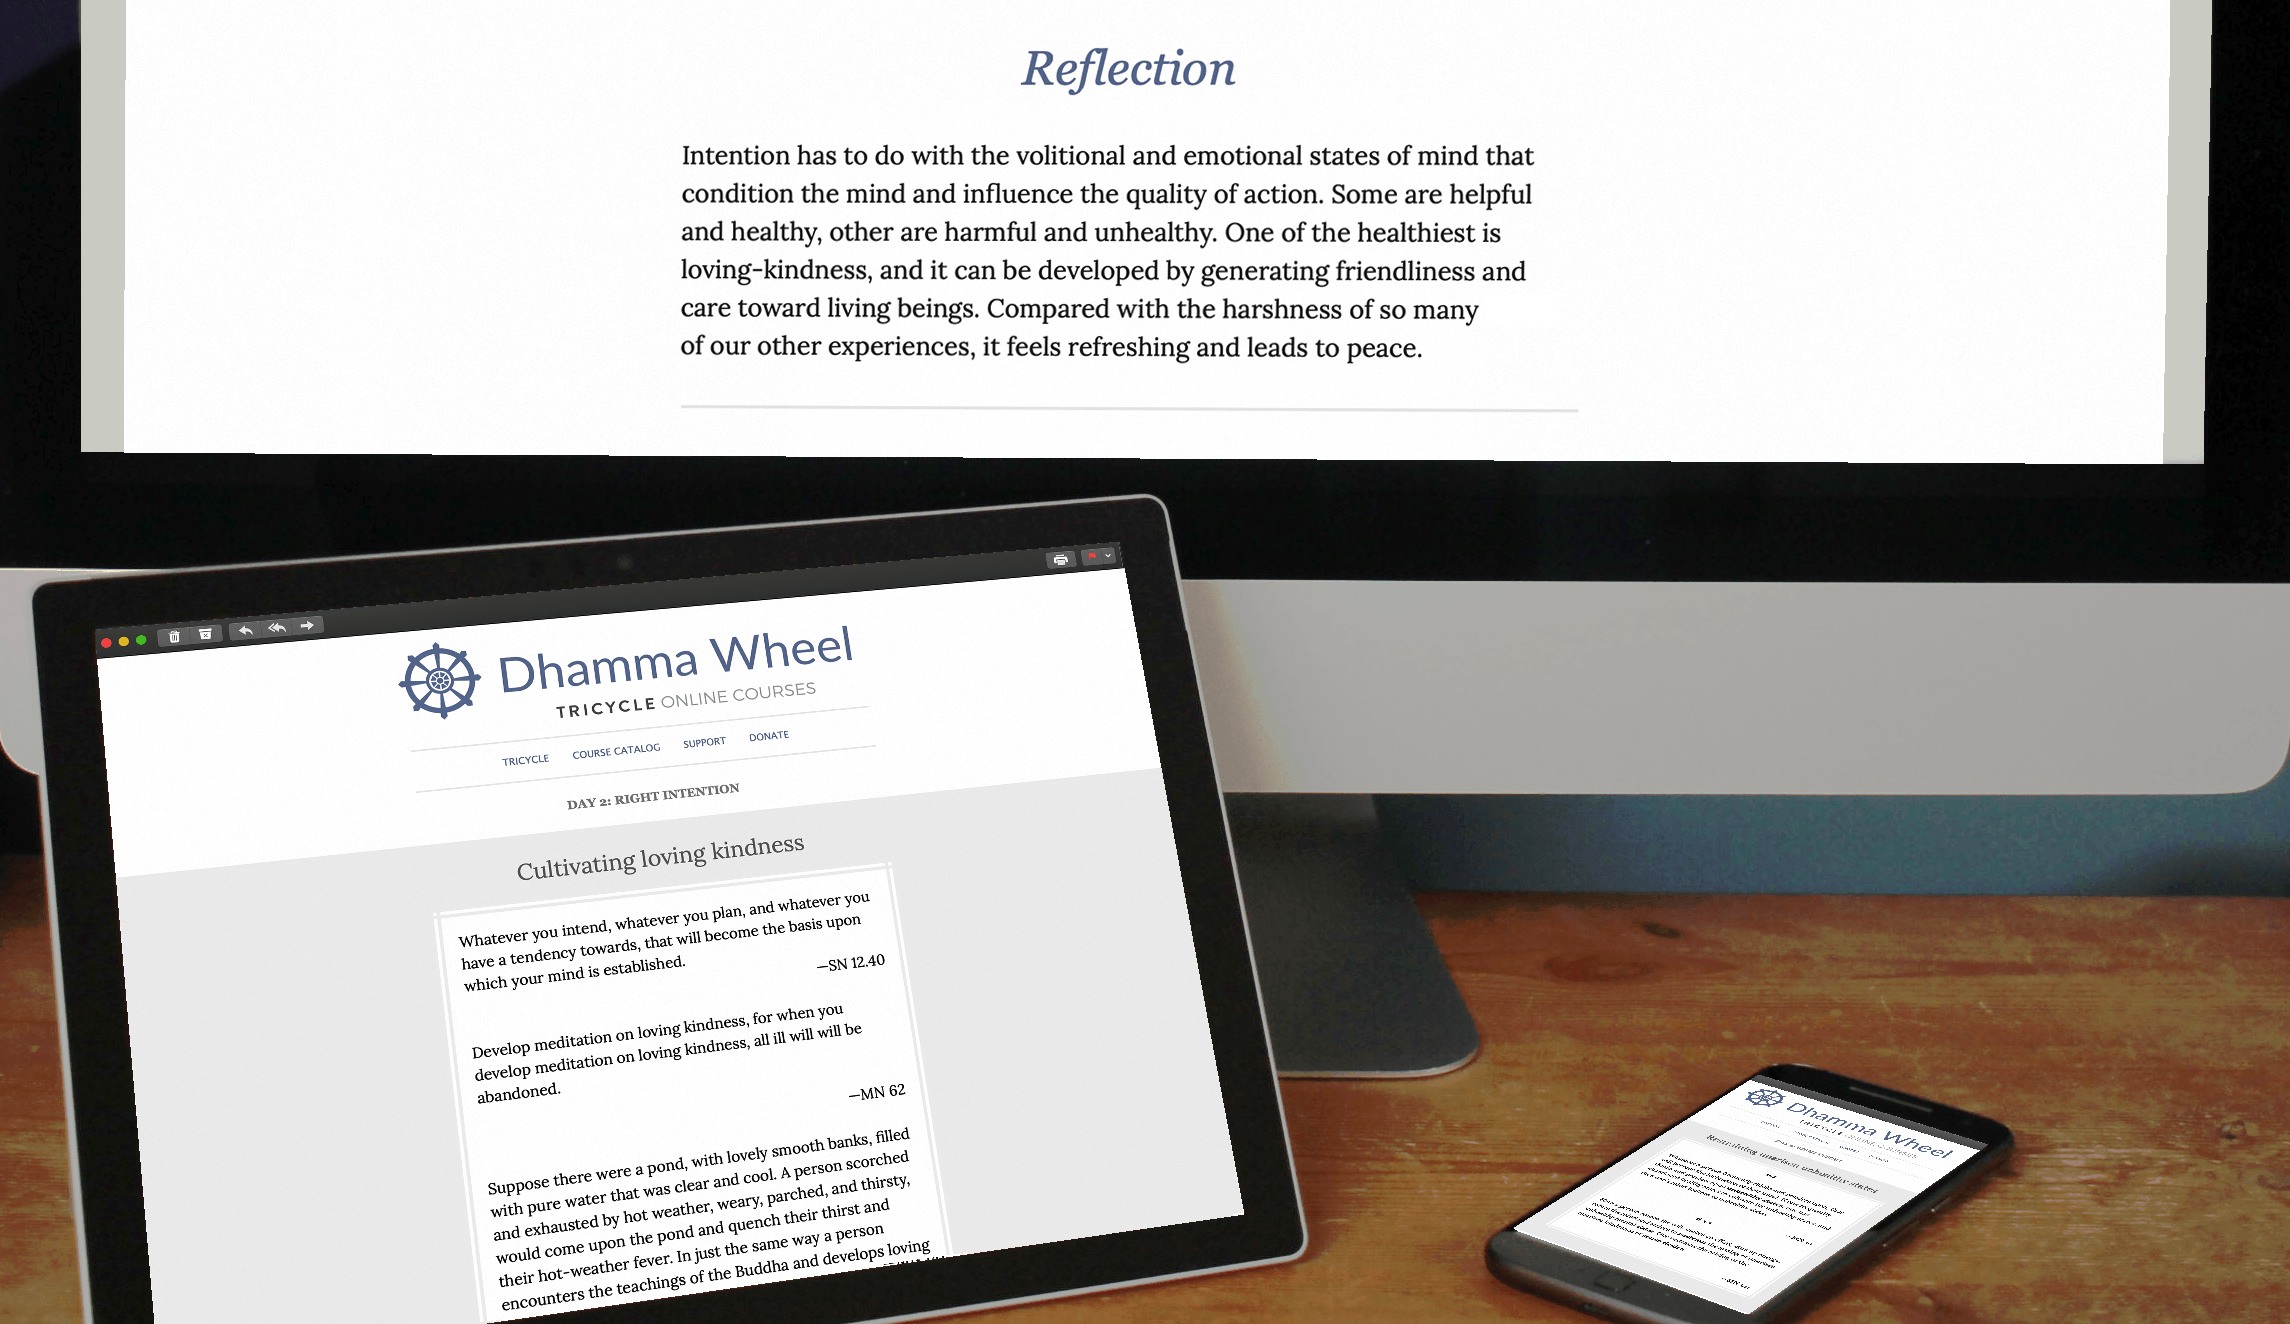 Dhamma Wheel email displayed on computer, tablet and mobile phone.